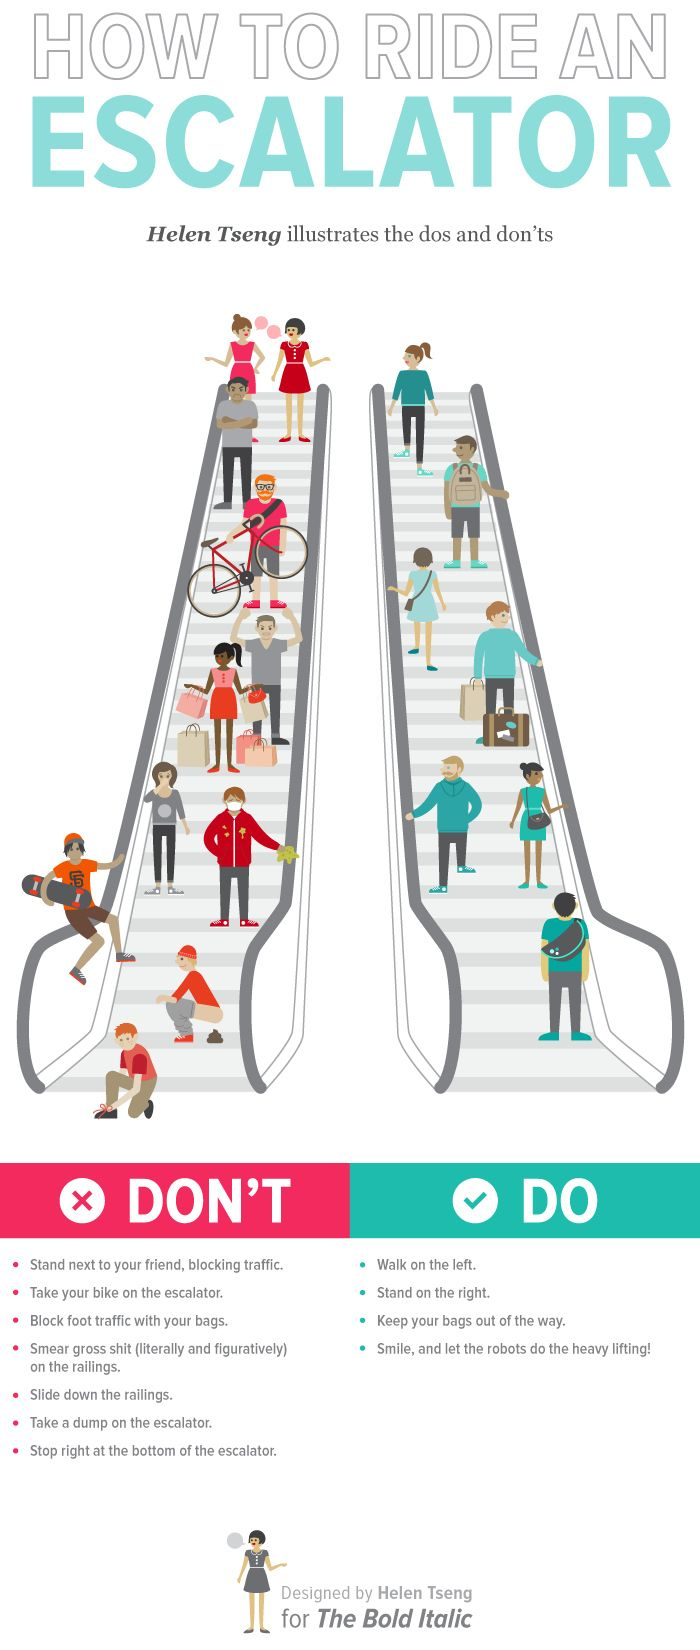 [Infographic] How To Ride An Escalator